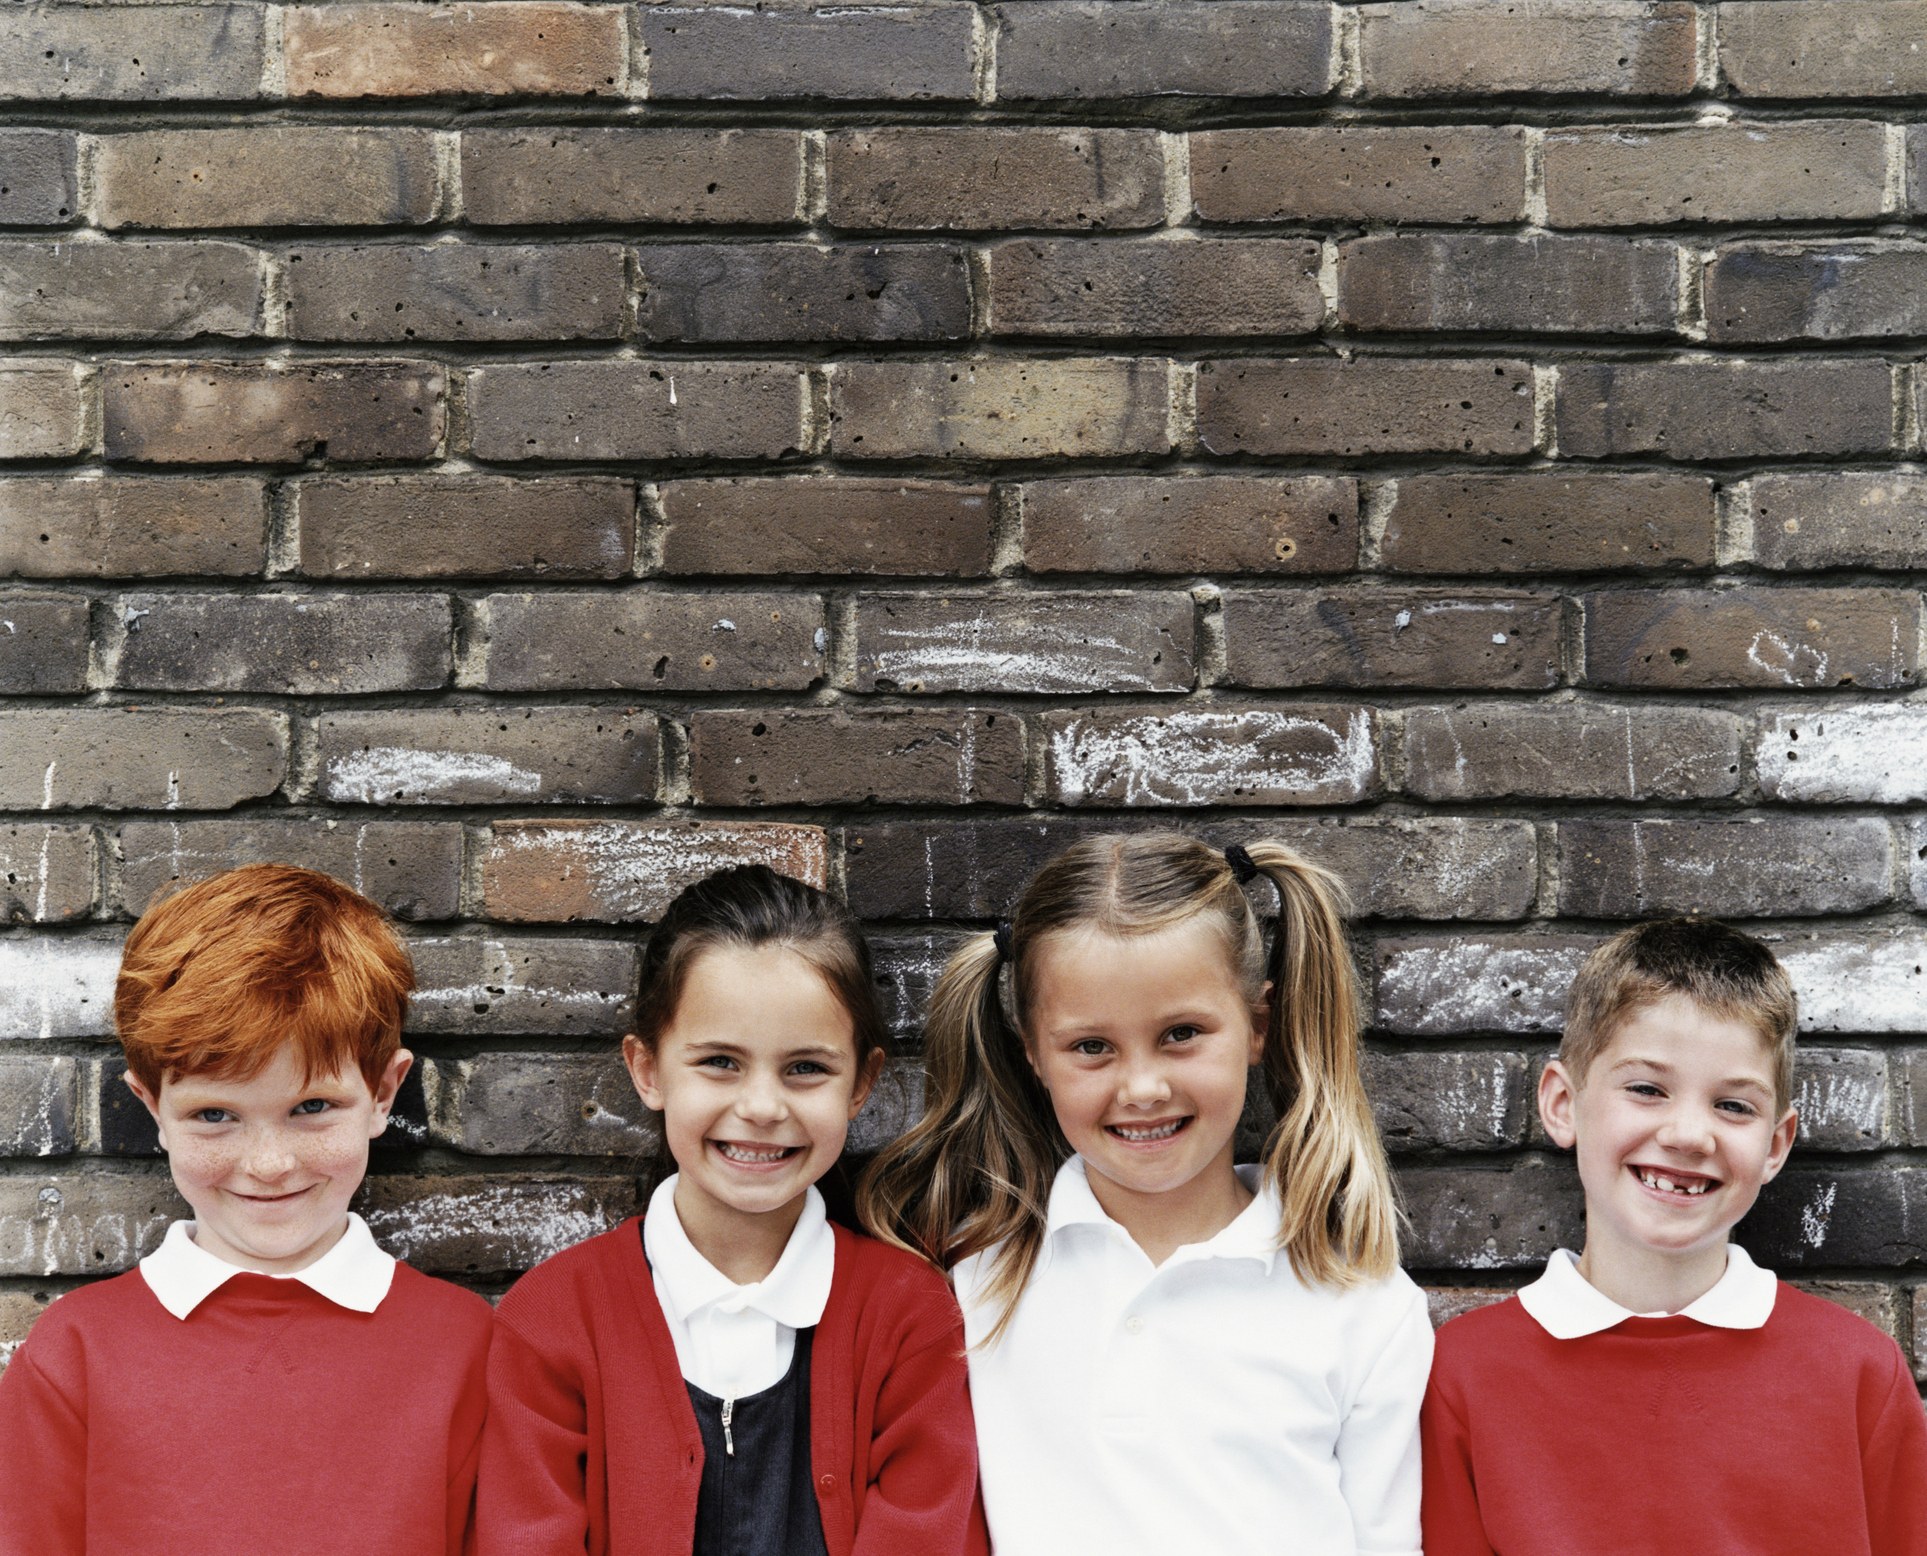 Four primary school children standing with their backs against a wall (Thinkstock/PA)